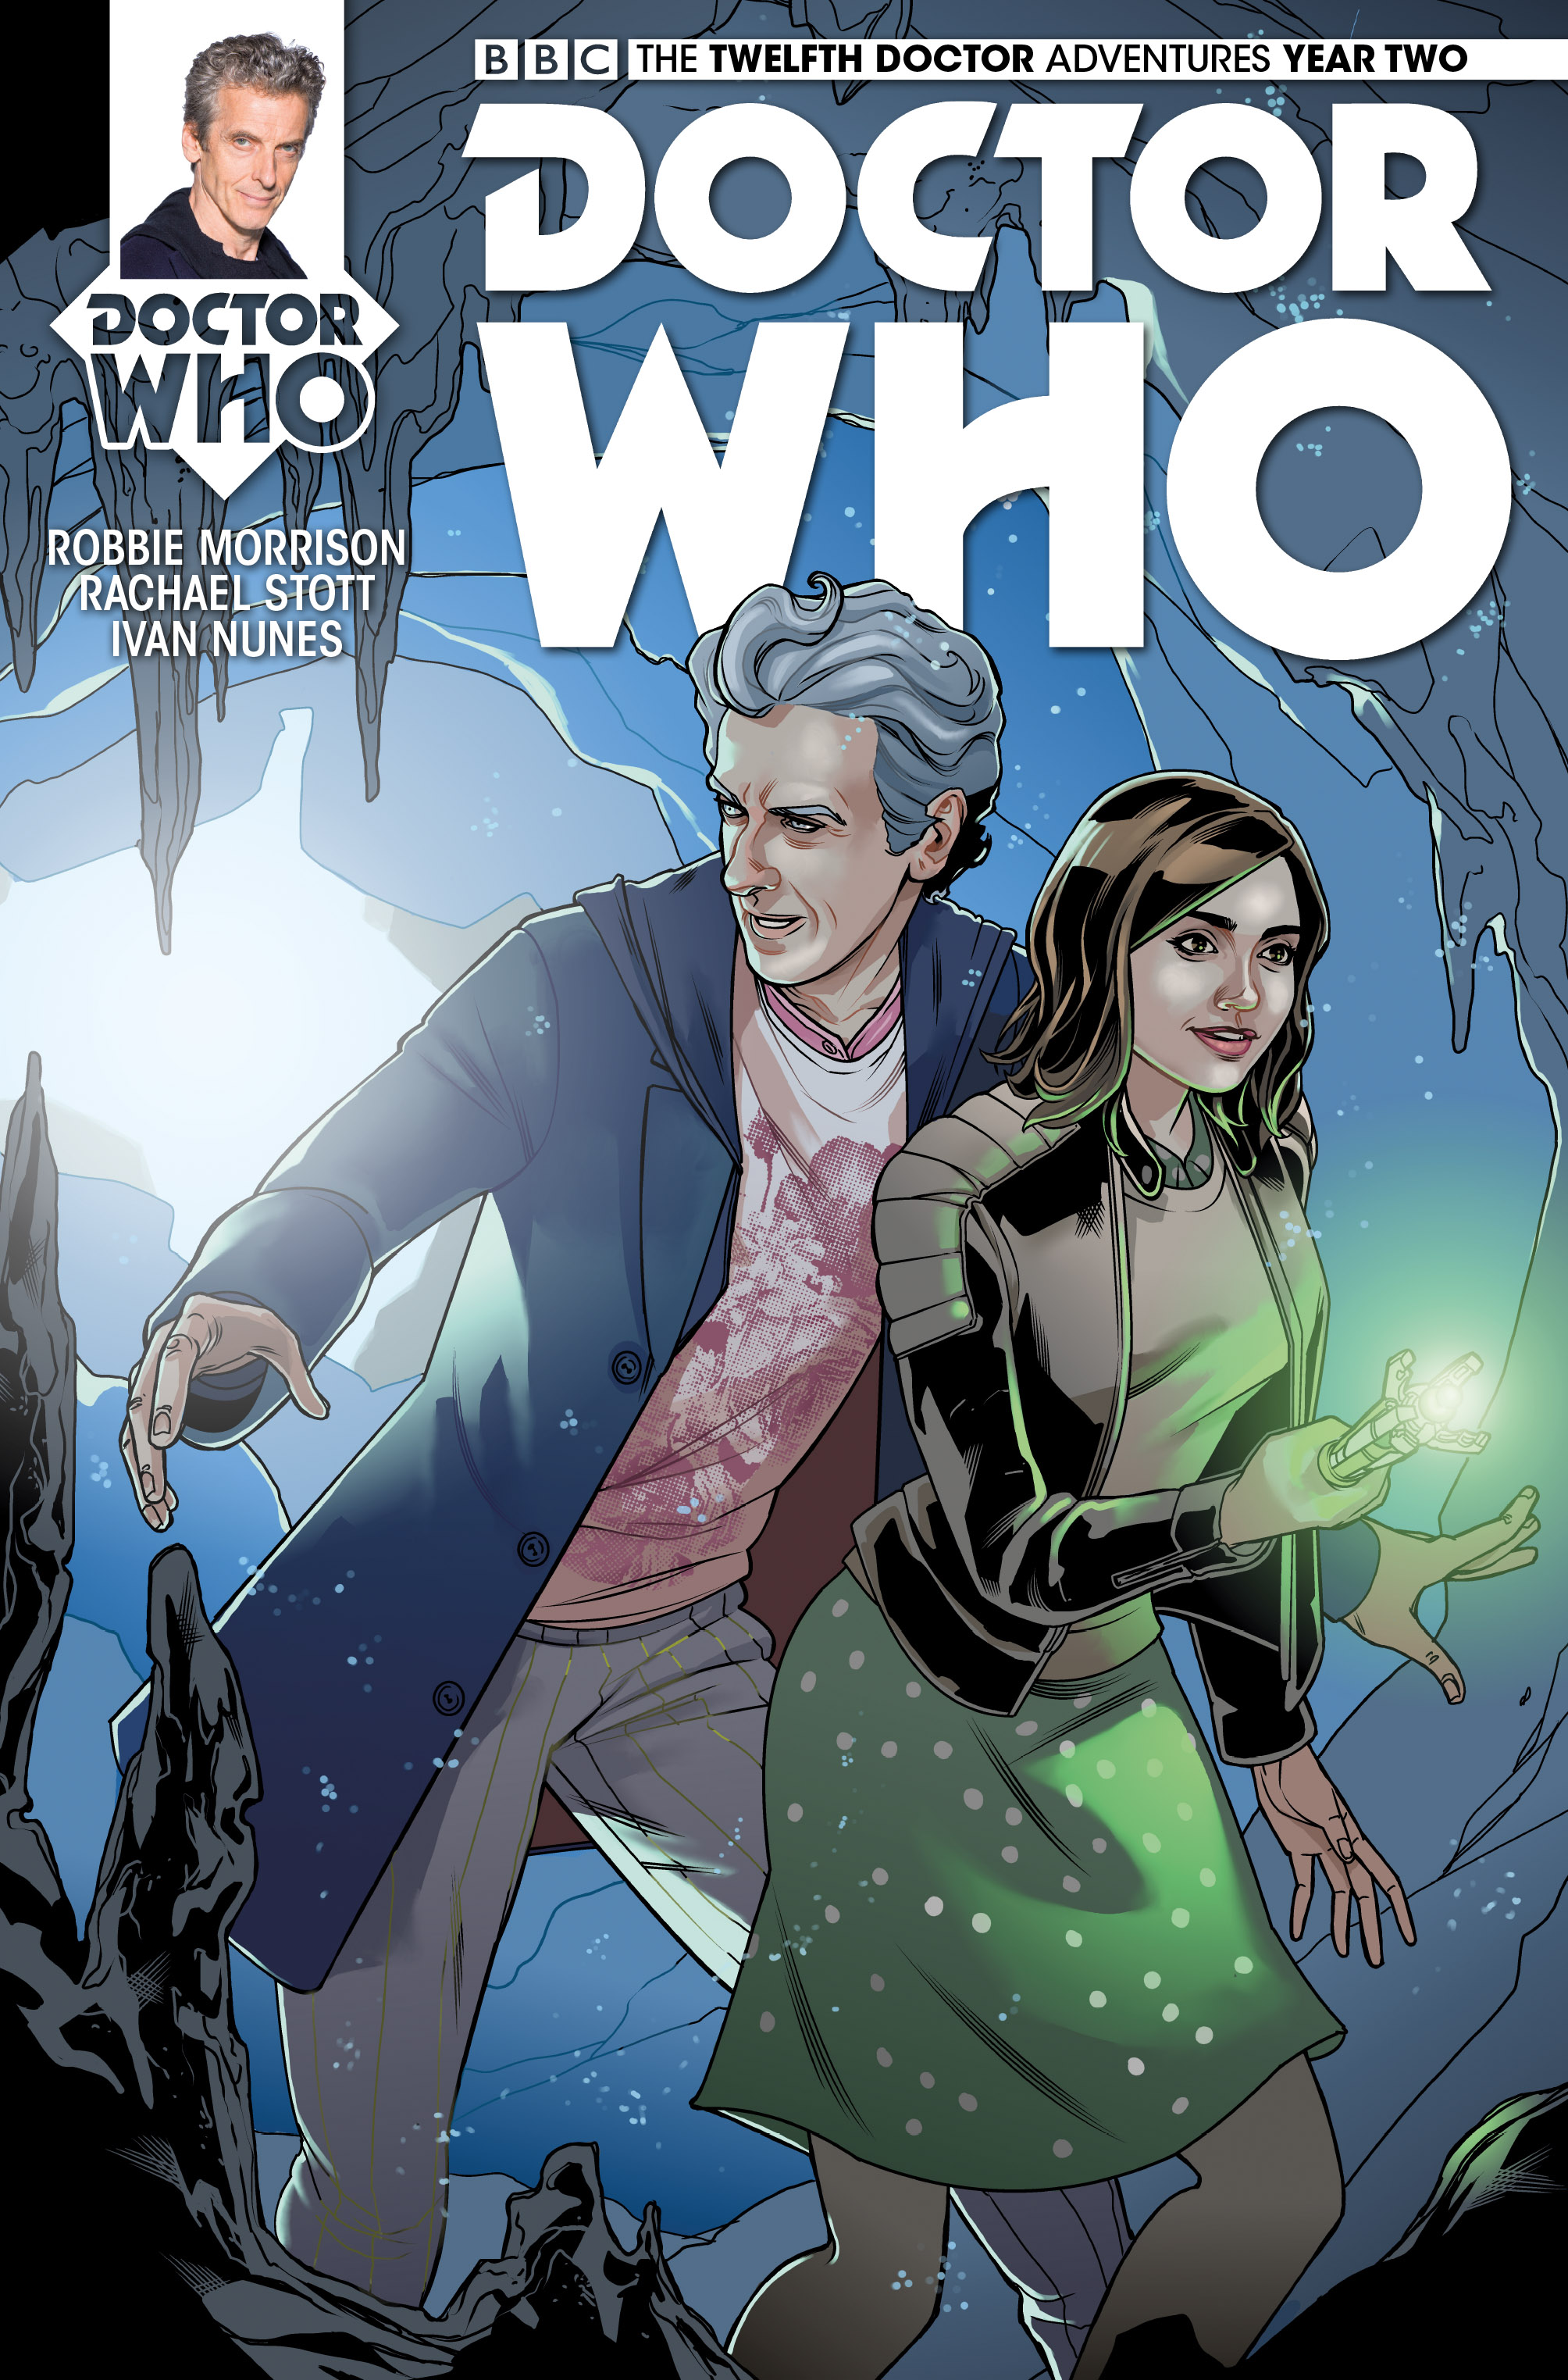 Doctor Who: The Twelfth Doctor #2.2 Cover